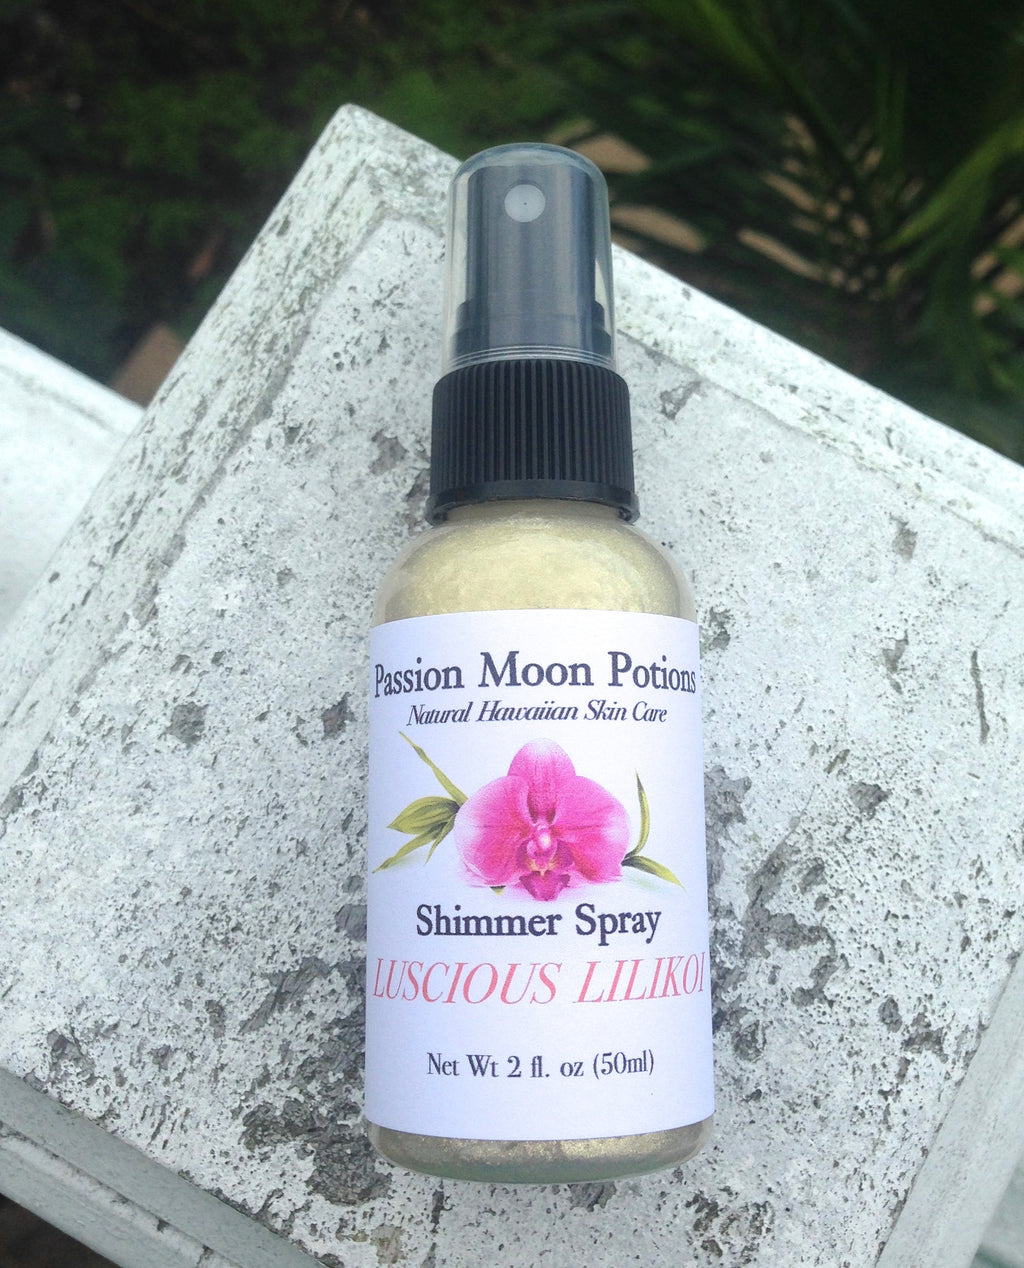 Luscious Lilikoi Shimmer Spray 2oz - Passion Moon Potions - 1